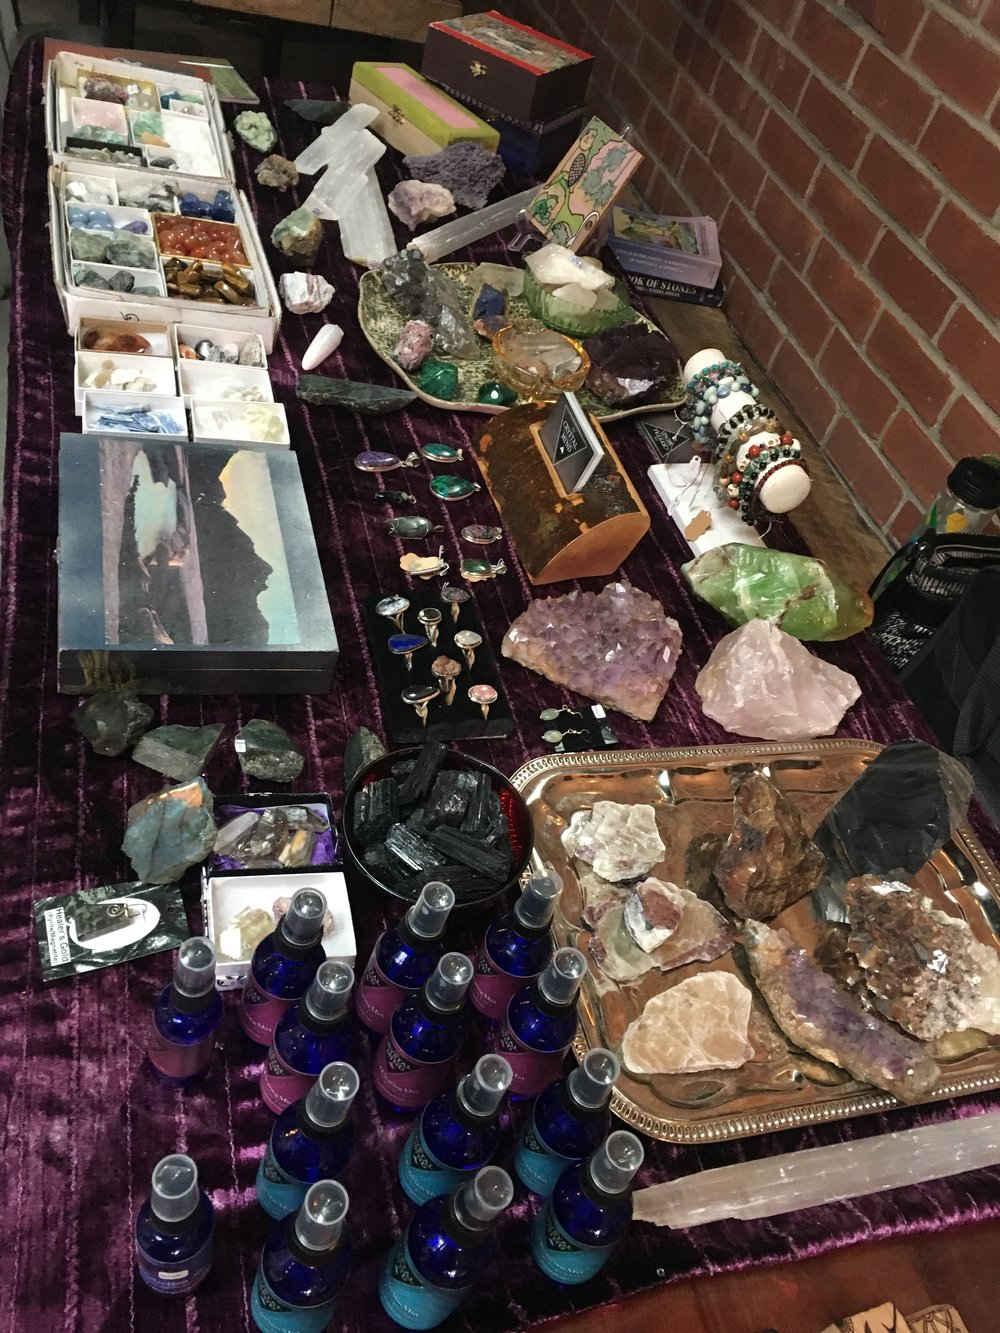 I'll be back at it, vending in Cassadaga on Saturday May 12th!  I've got a lot of new inventory and great surprises to unveil to you all. Come out and see the new directions I'm headed in creatively! There will be a plethora of vendors, psychics, mediums, healers and artists there displaying a wide variety of spiritual gifts and talents. If you haven't been to this sleepy little psychic town, it's definitely worth a day trip to get to know your local psychic hub in Volusia County.  I'll be set up in the Andrew Jackson Davis building, which is indoors and connected to the Cassadaga Camp Bookstore. I can't wait to reconnect with my Cassadaga community and friends. I look forward to seeing you all there and making lots of new friends and connections.